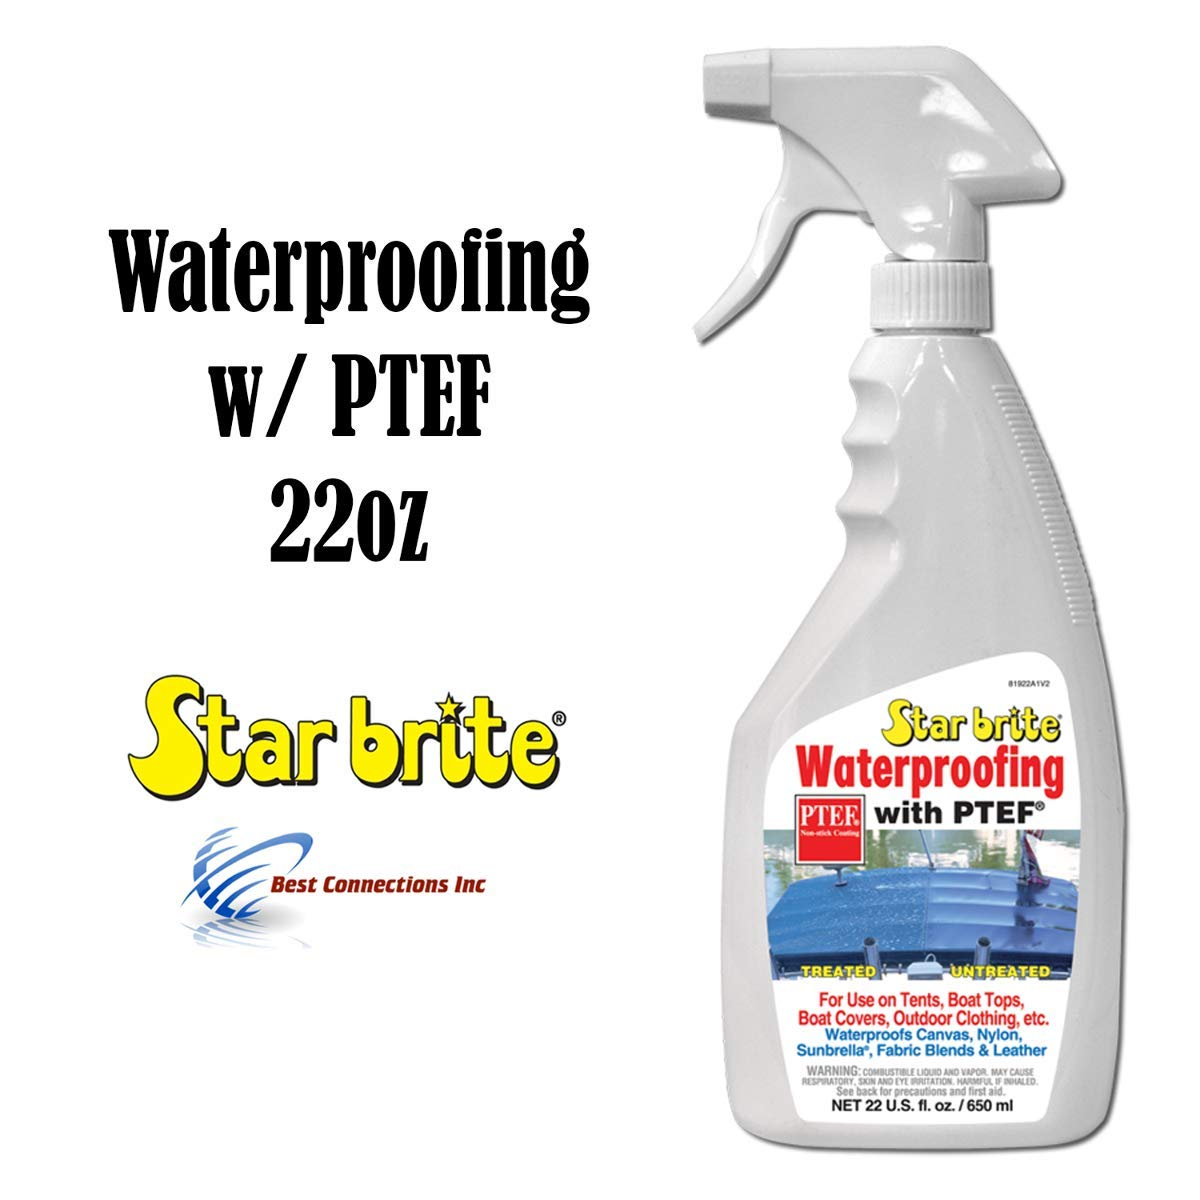 Star Brite with PTEF